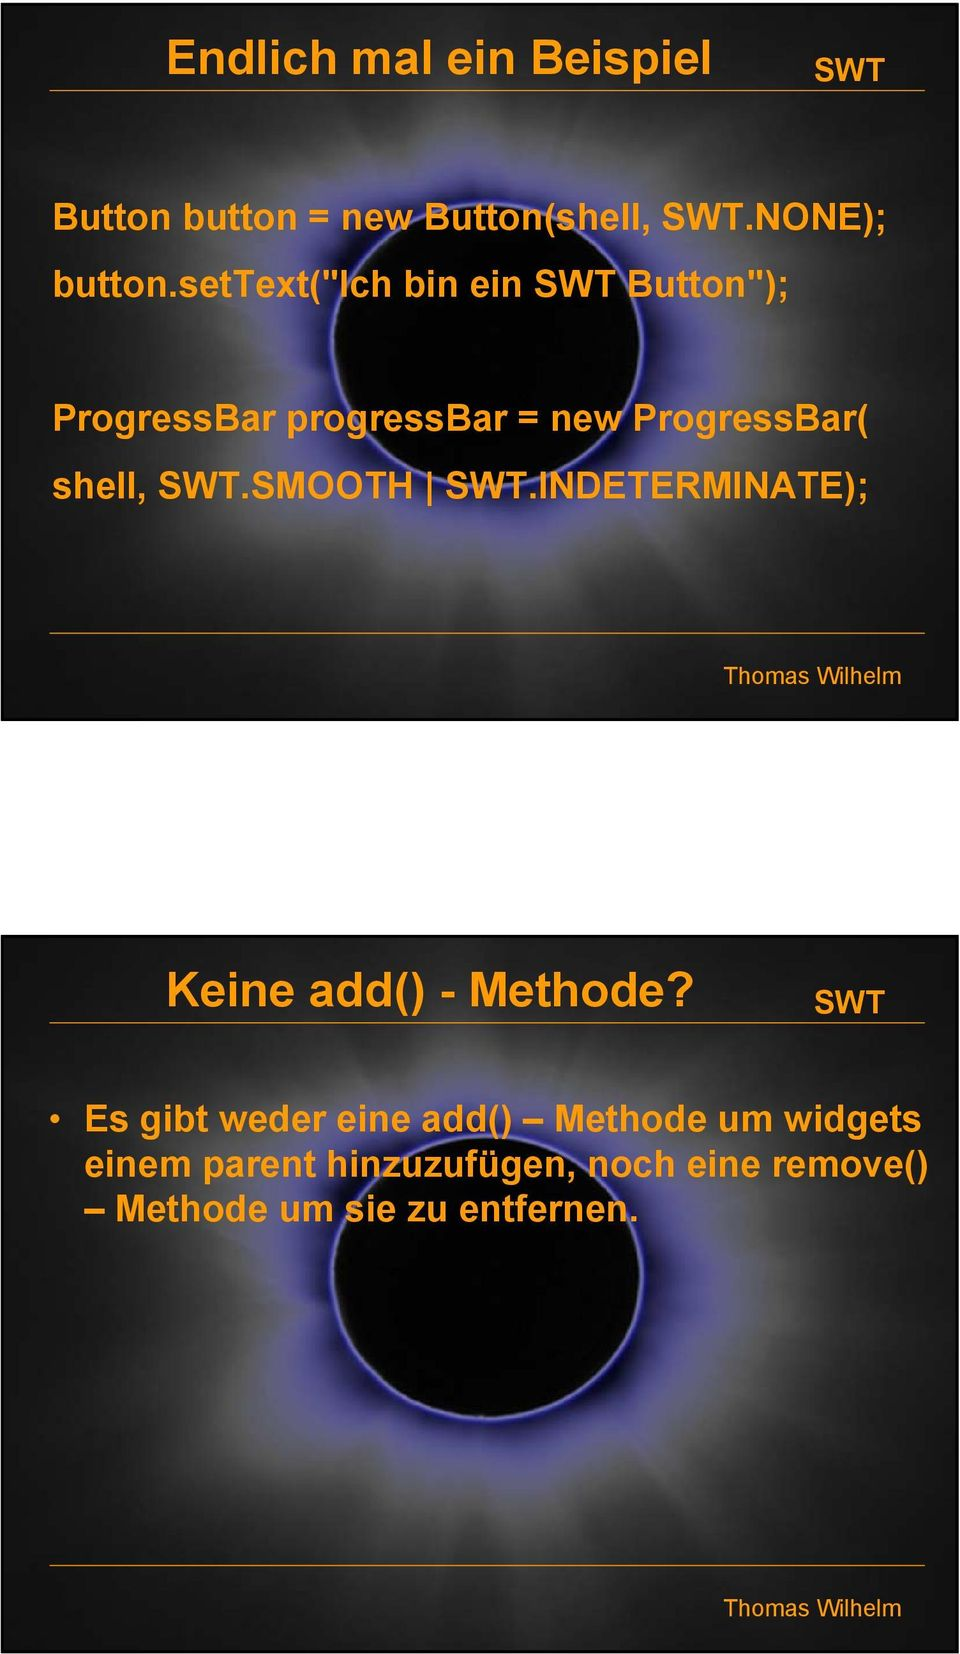 shell,.smooth.indeterminate); Keine add() - Methode?